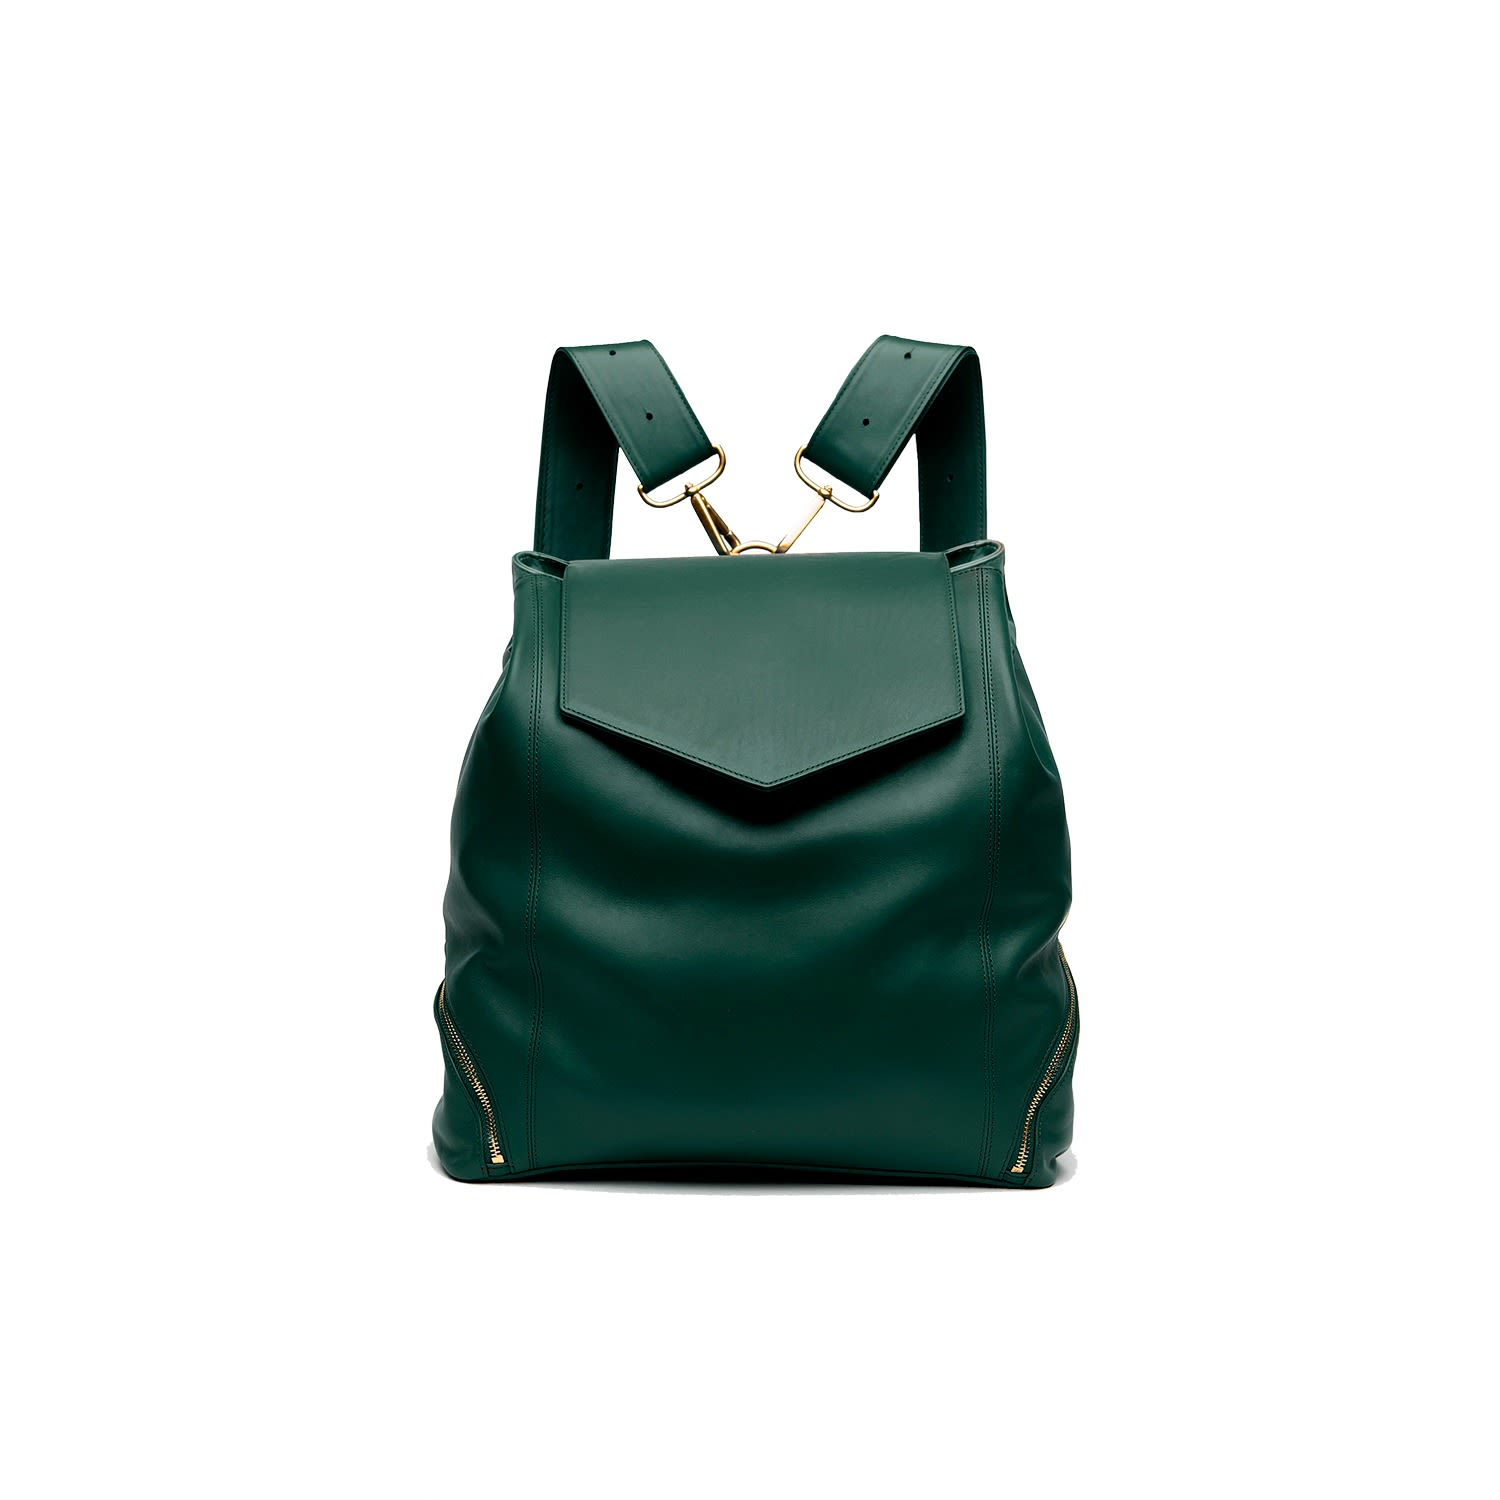 The Professional Leather Backpack Purse In